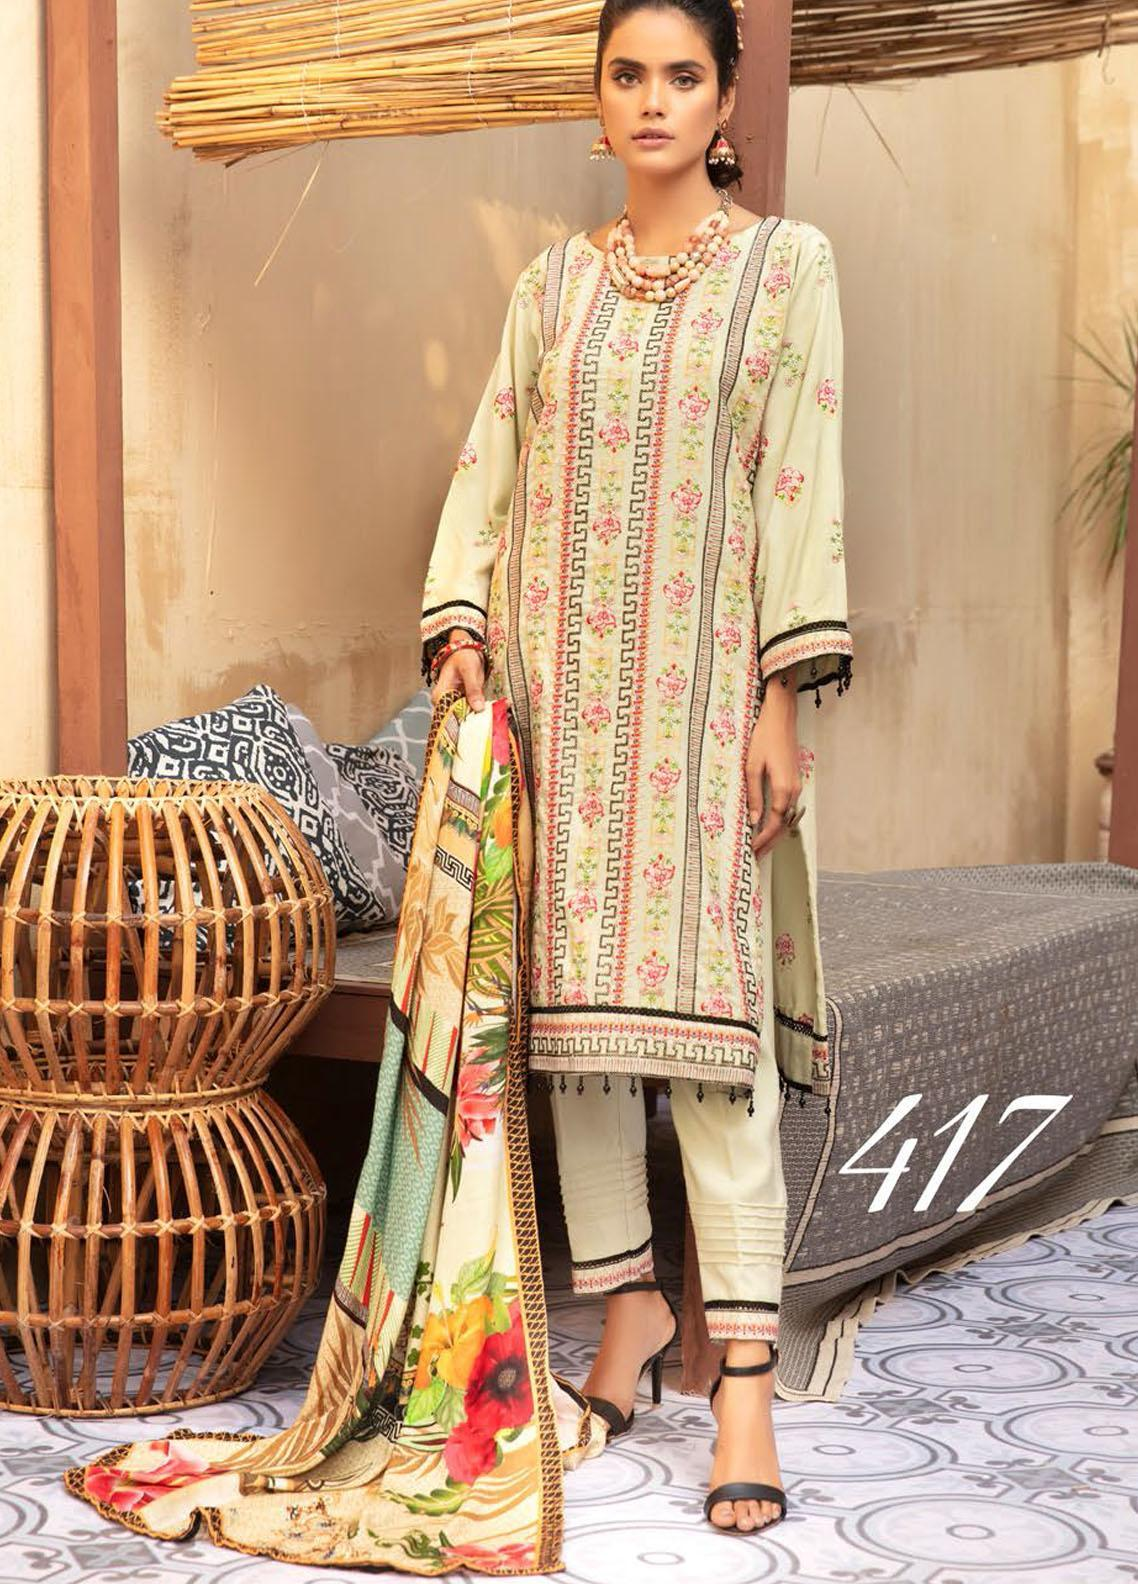 Khoobseerat by Shaista Embroidered Peach Unstitched 3 Piece Suit SHT20KB 417 - Winter Collection